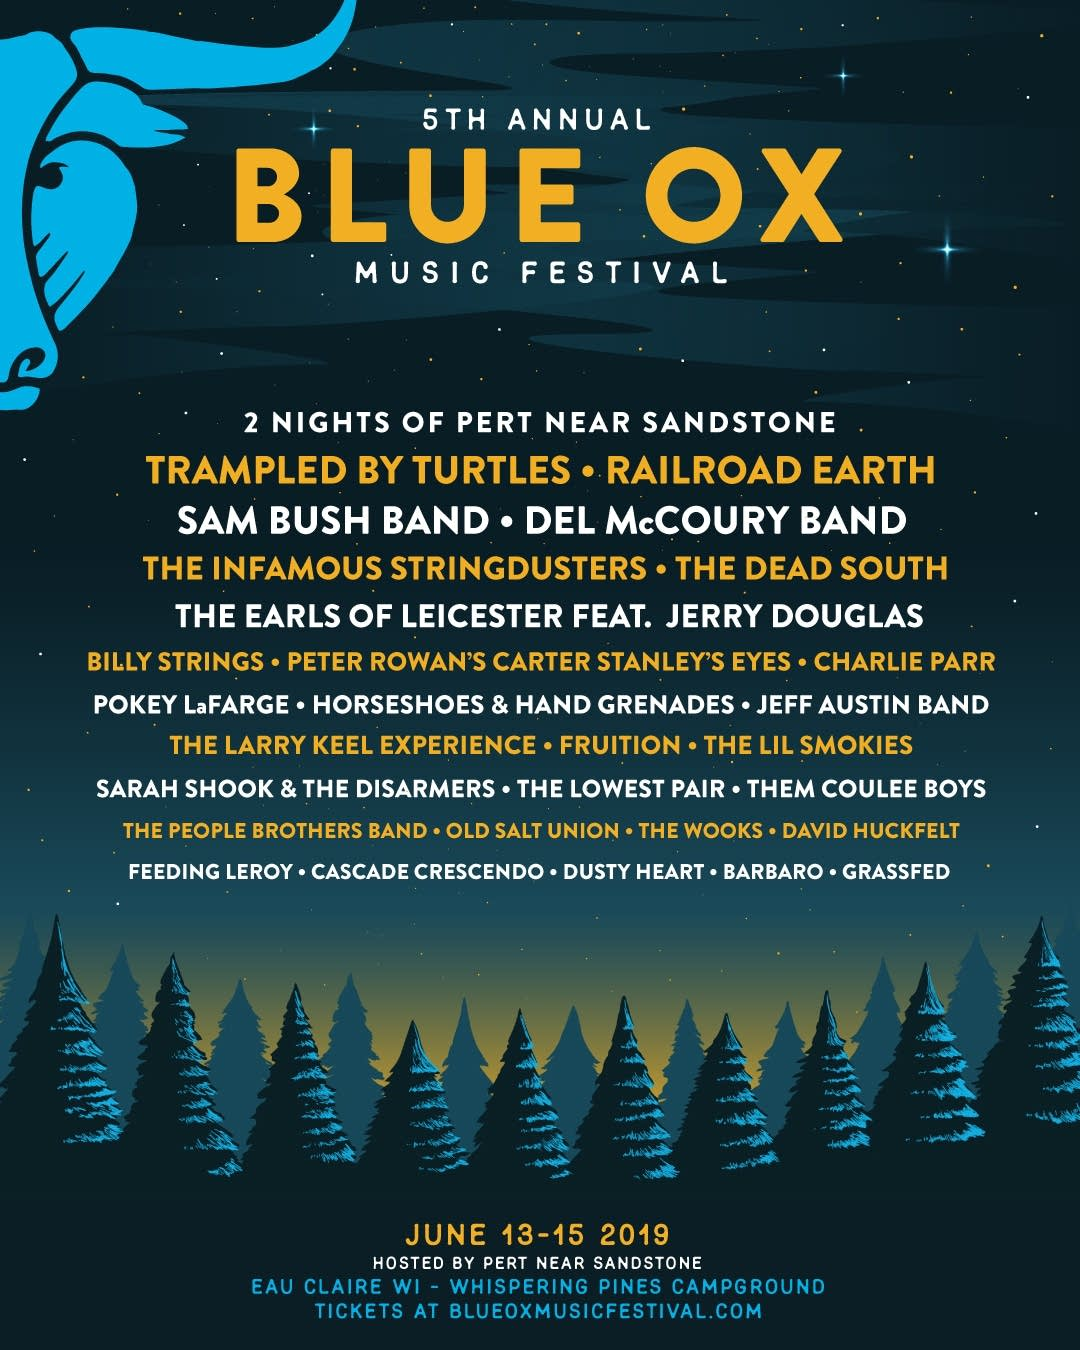 Blue Ox Music Festival June 13-15, 2019